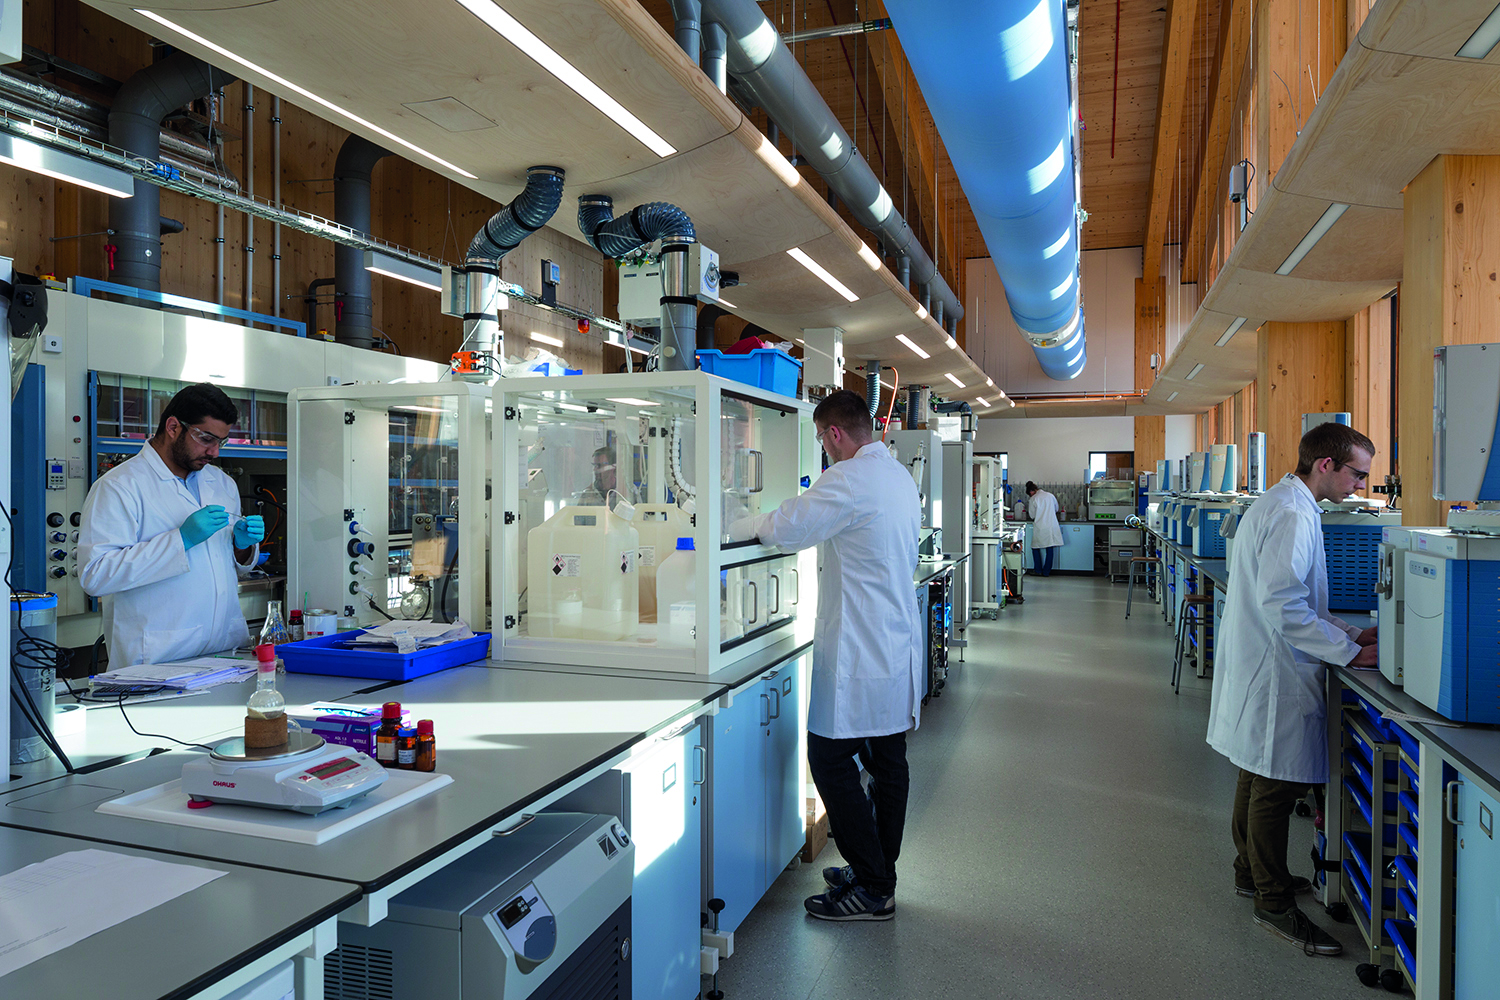 <p>The timber structure and services in the laboratories are exposed. © Martine Hamilton Knight</p>